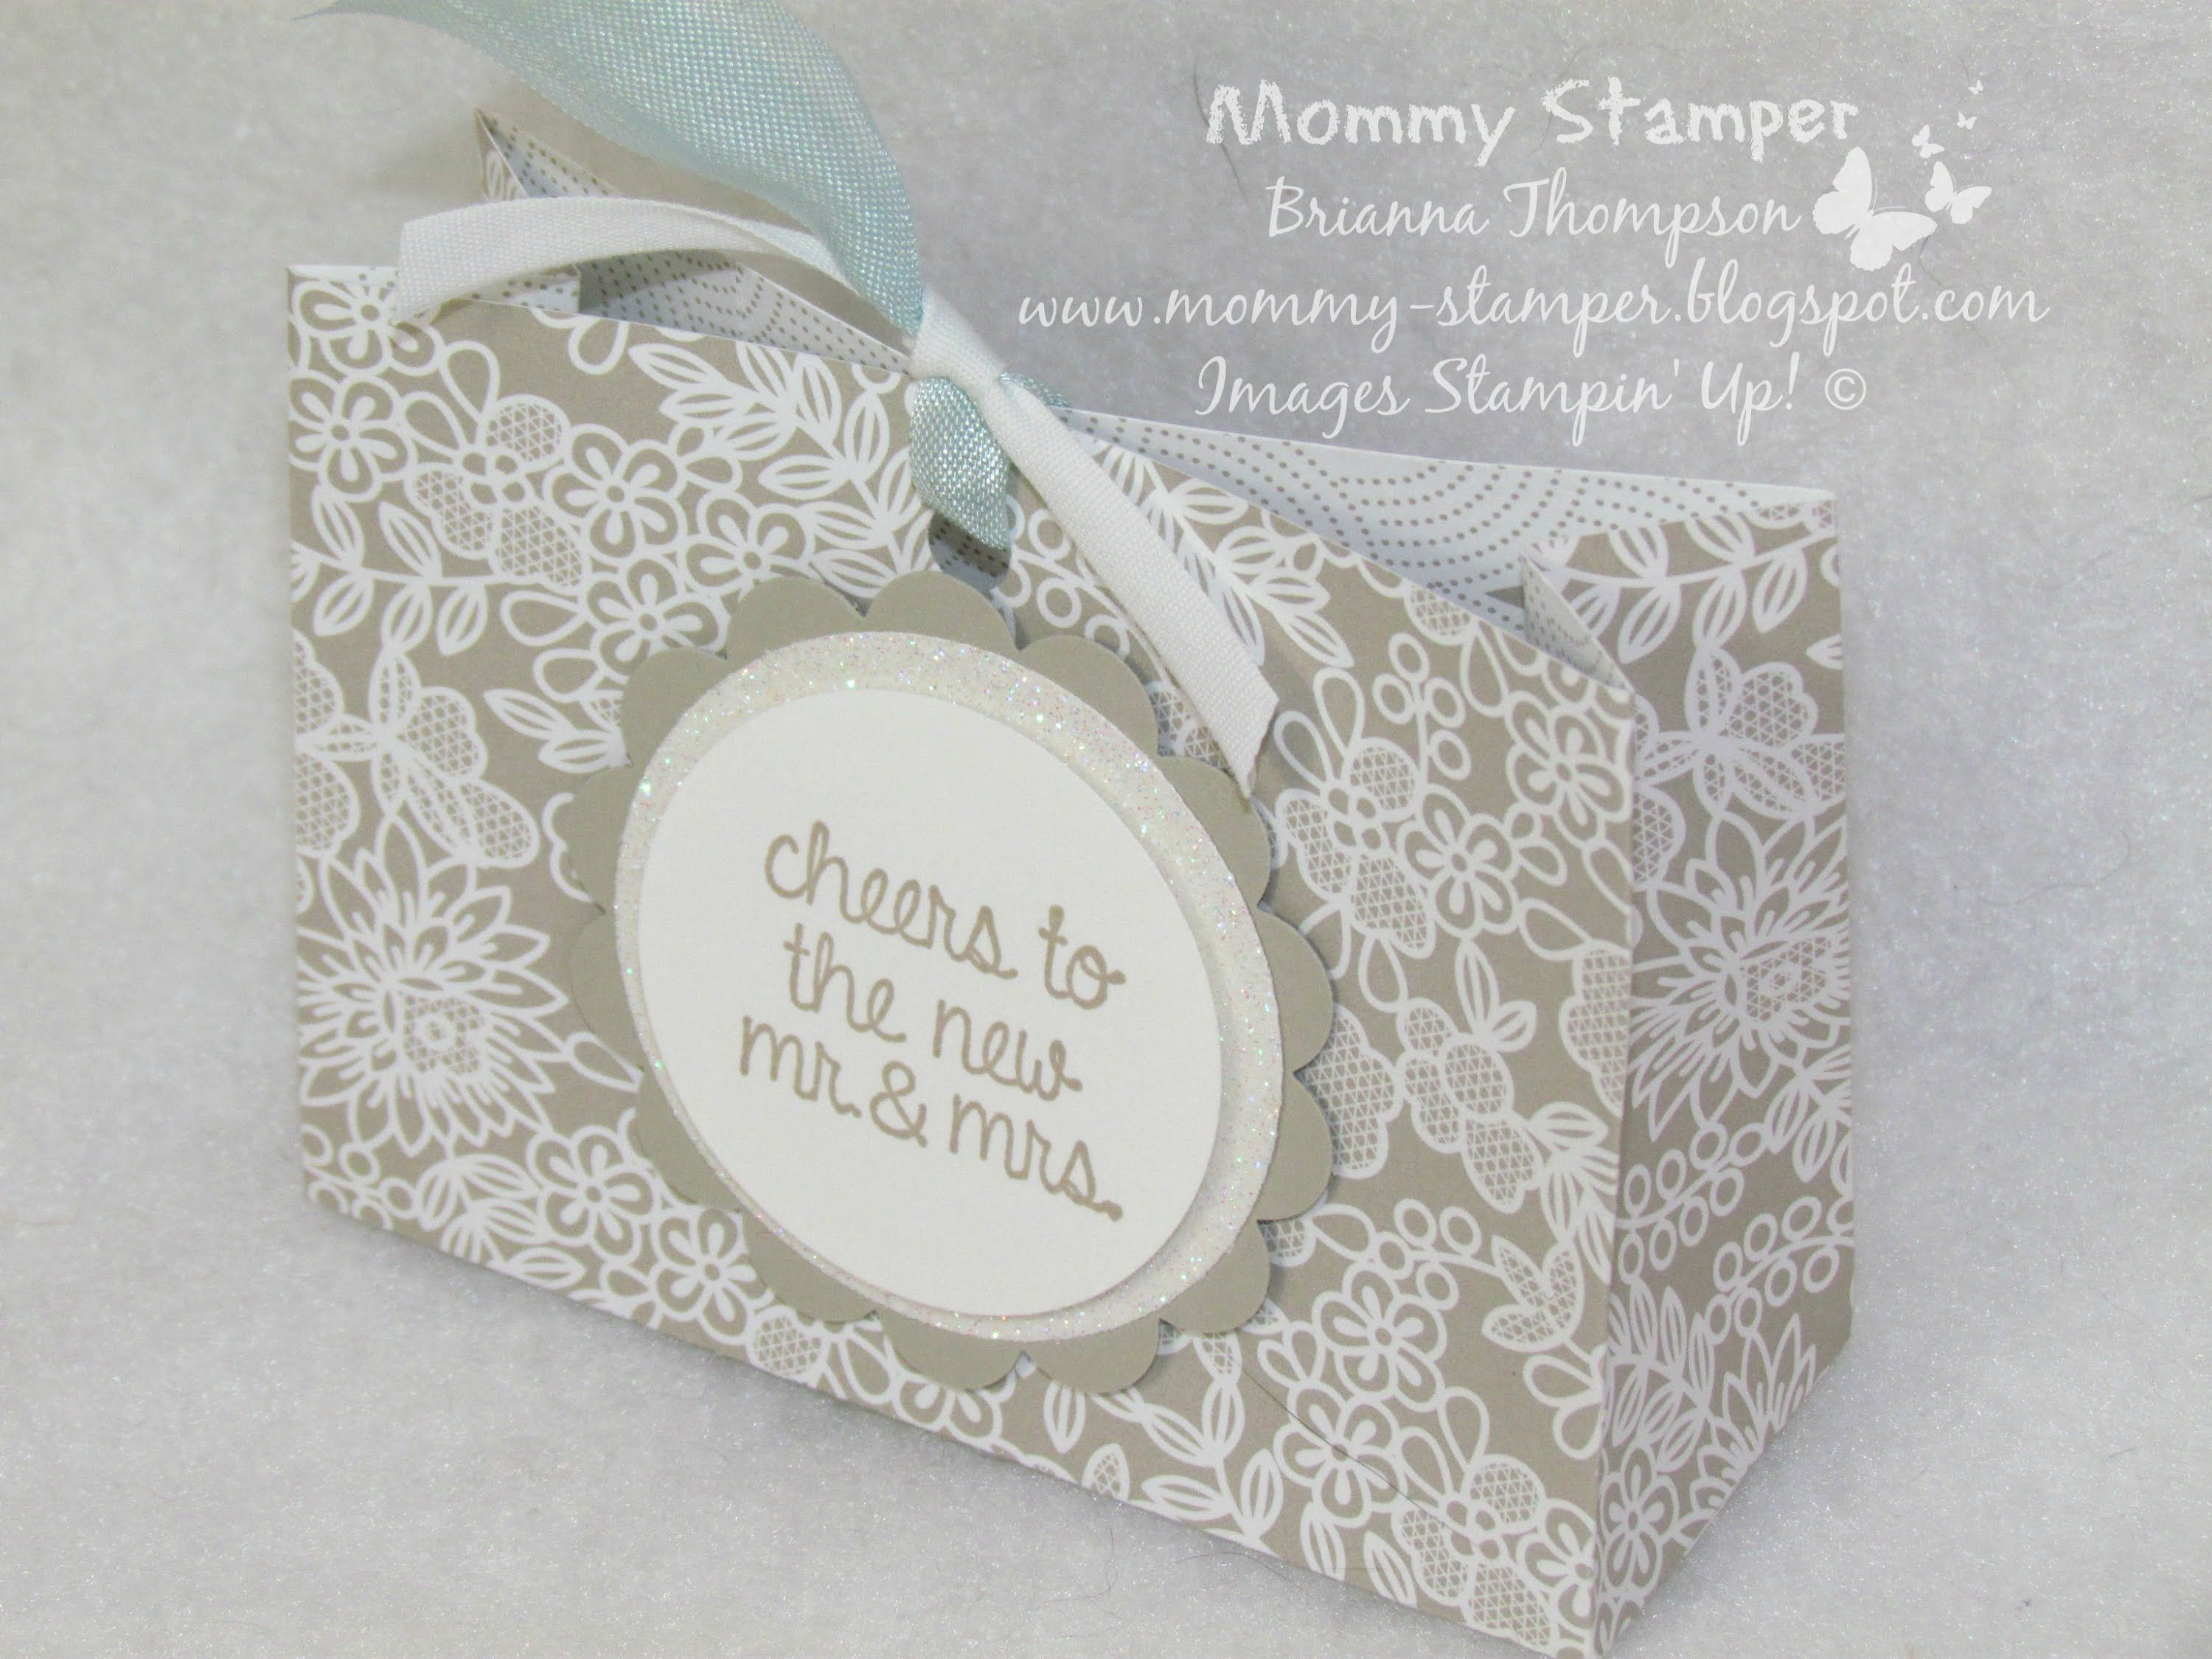 Wedding Favor Bag with Mommy Stamper | Bags, Boxes & More ...